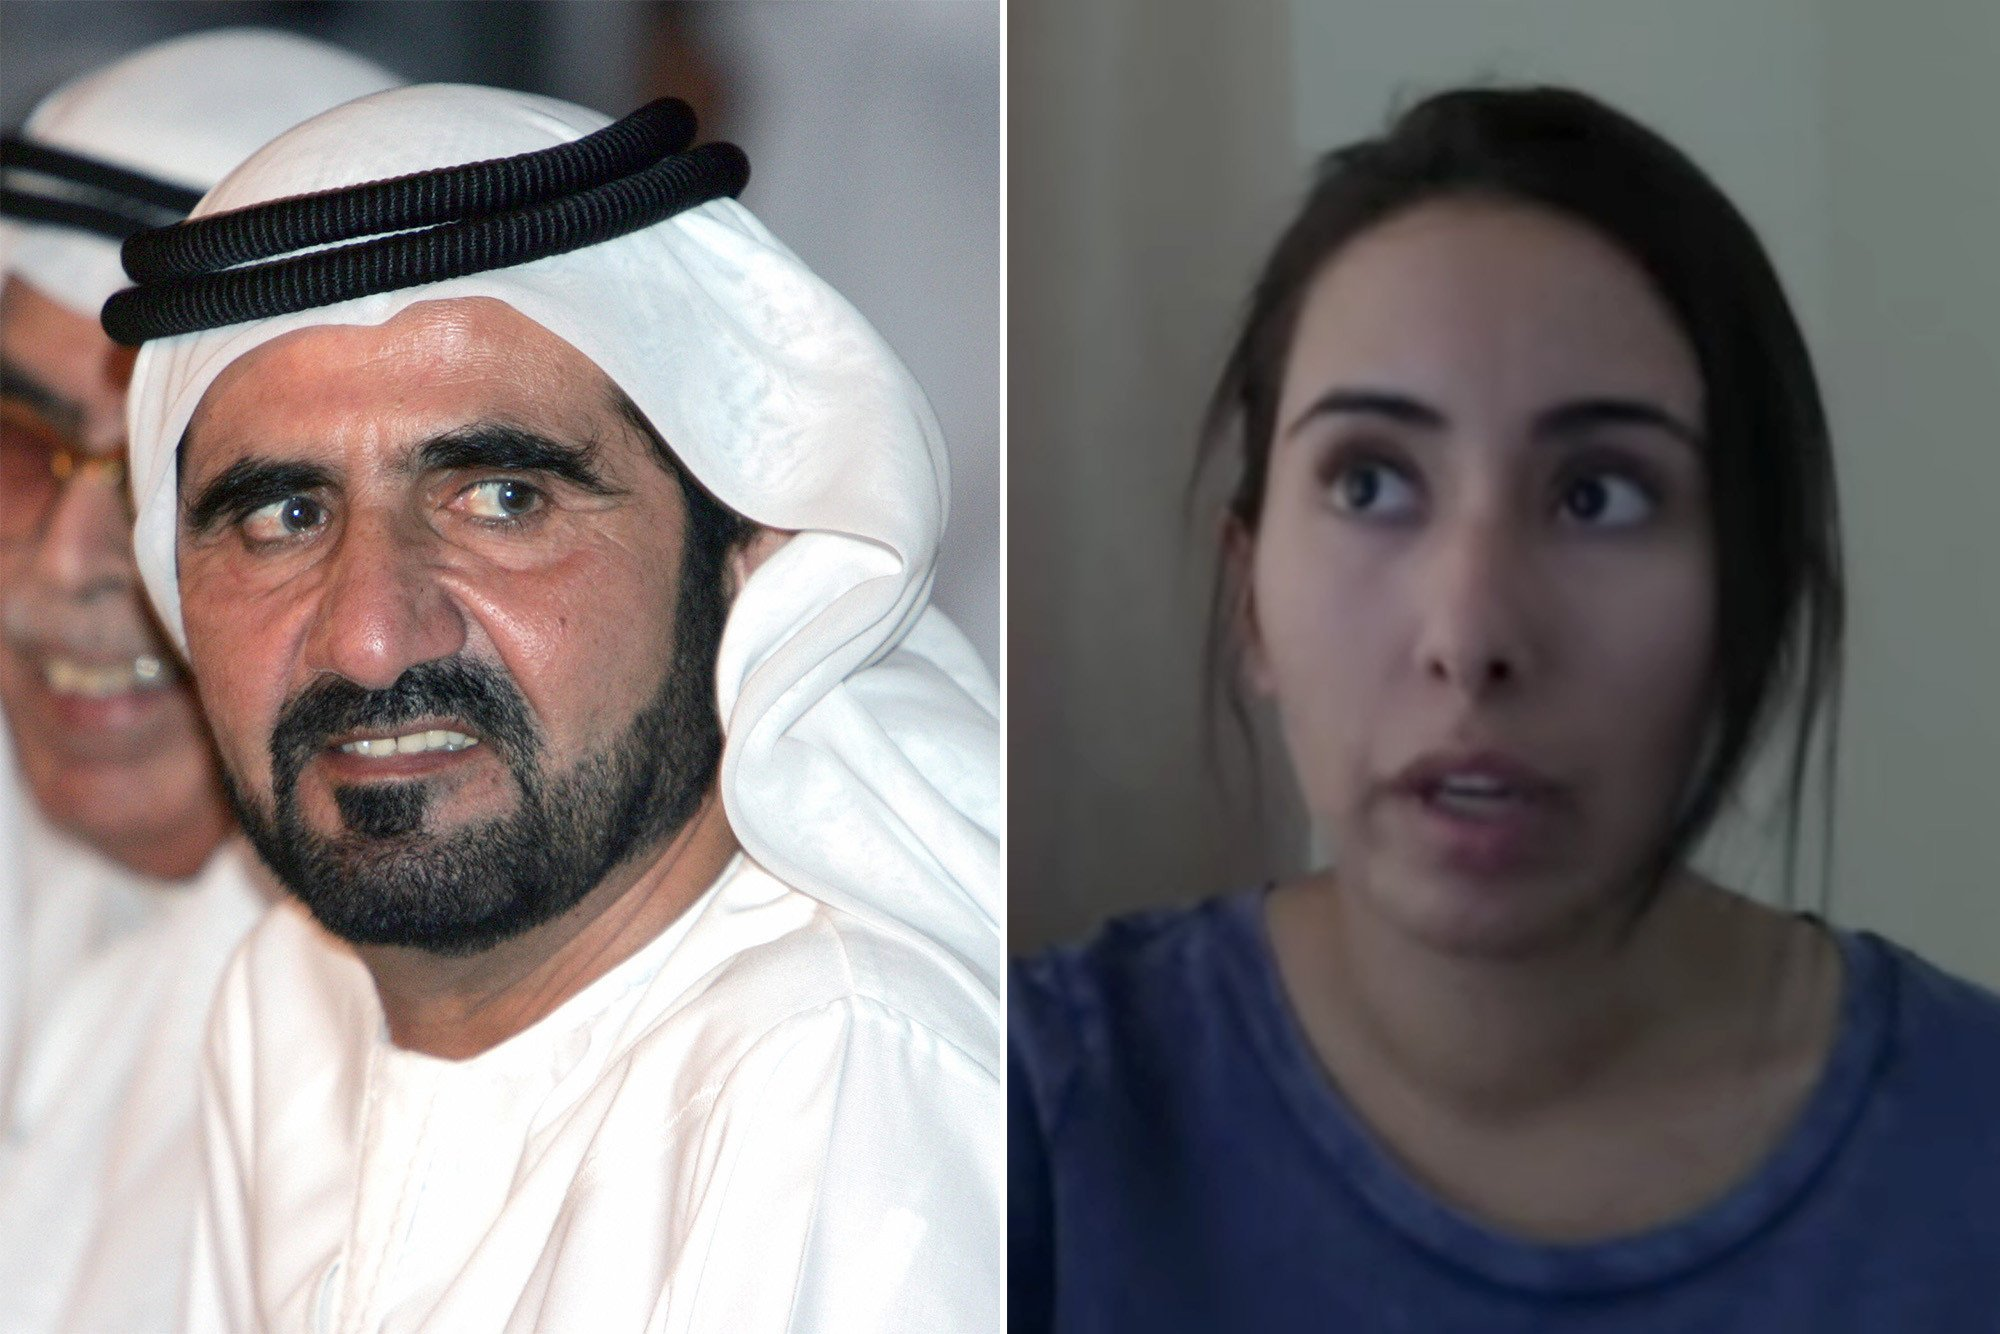 Dubai 'princess' disappears after posting chilling 'last' video